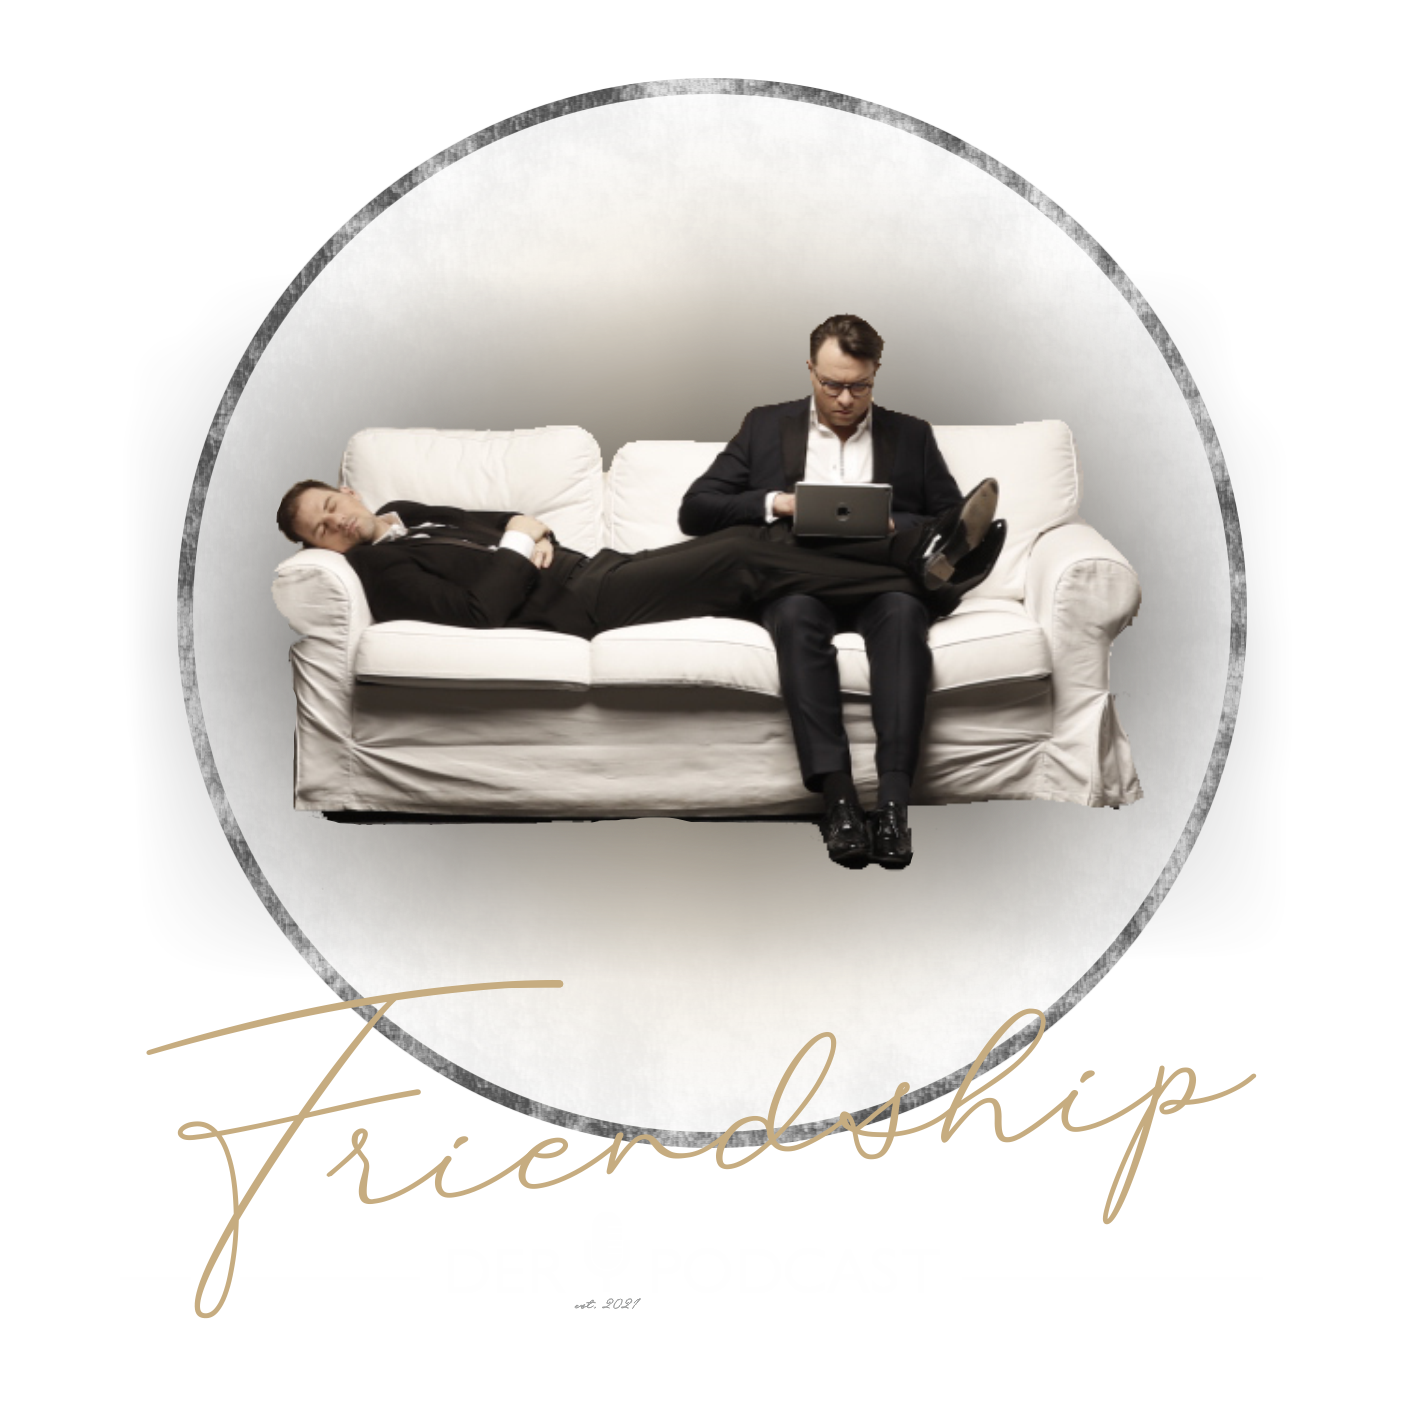 Friendship - Der Podacst